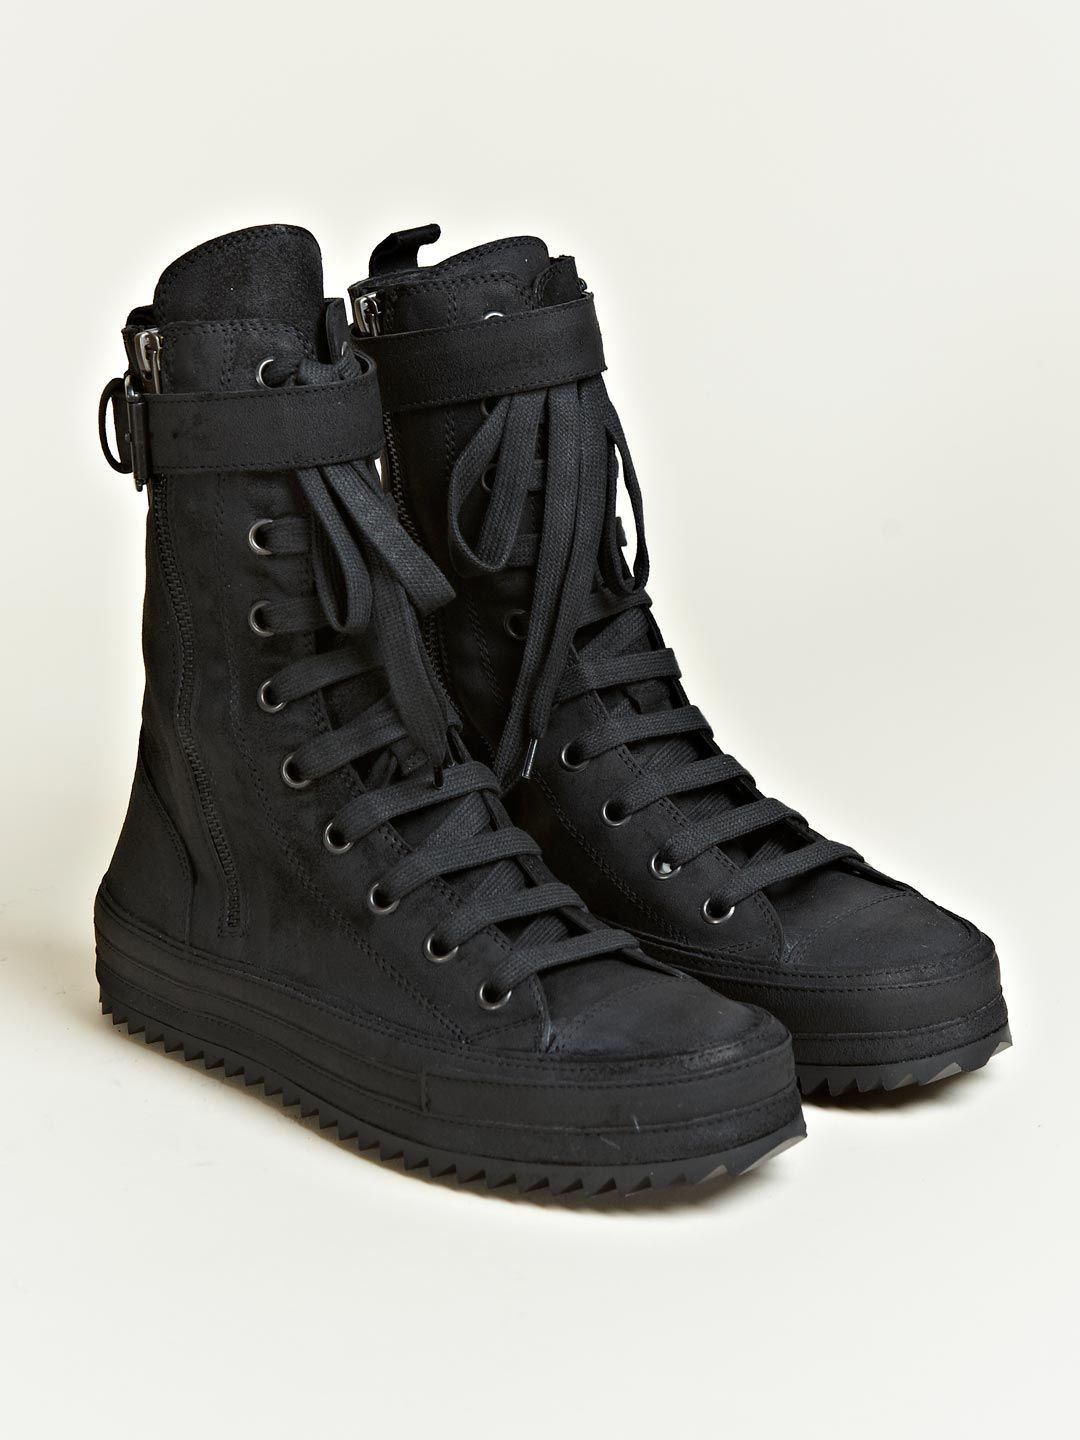 Cool boots, Sneakers, Mens fashion